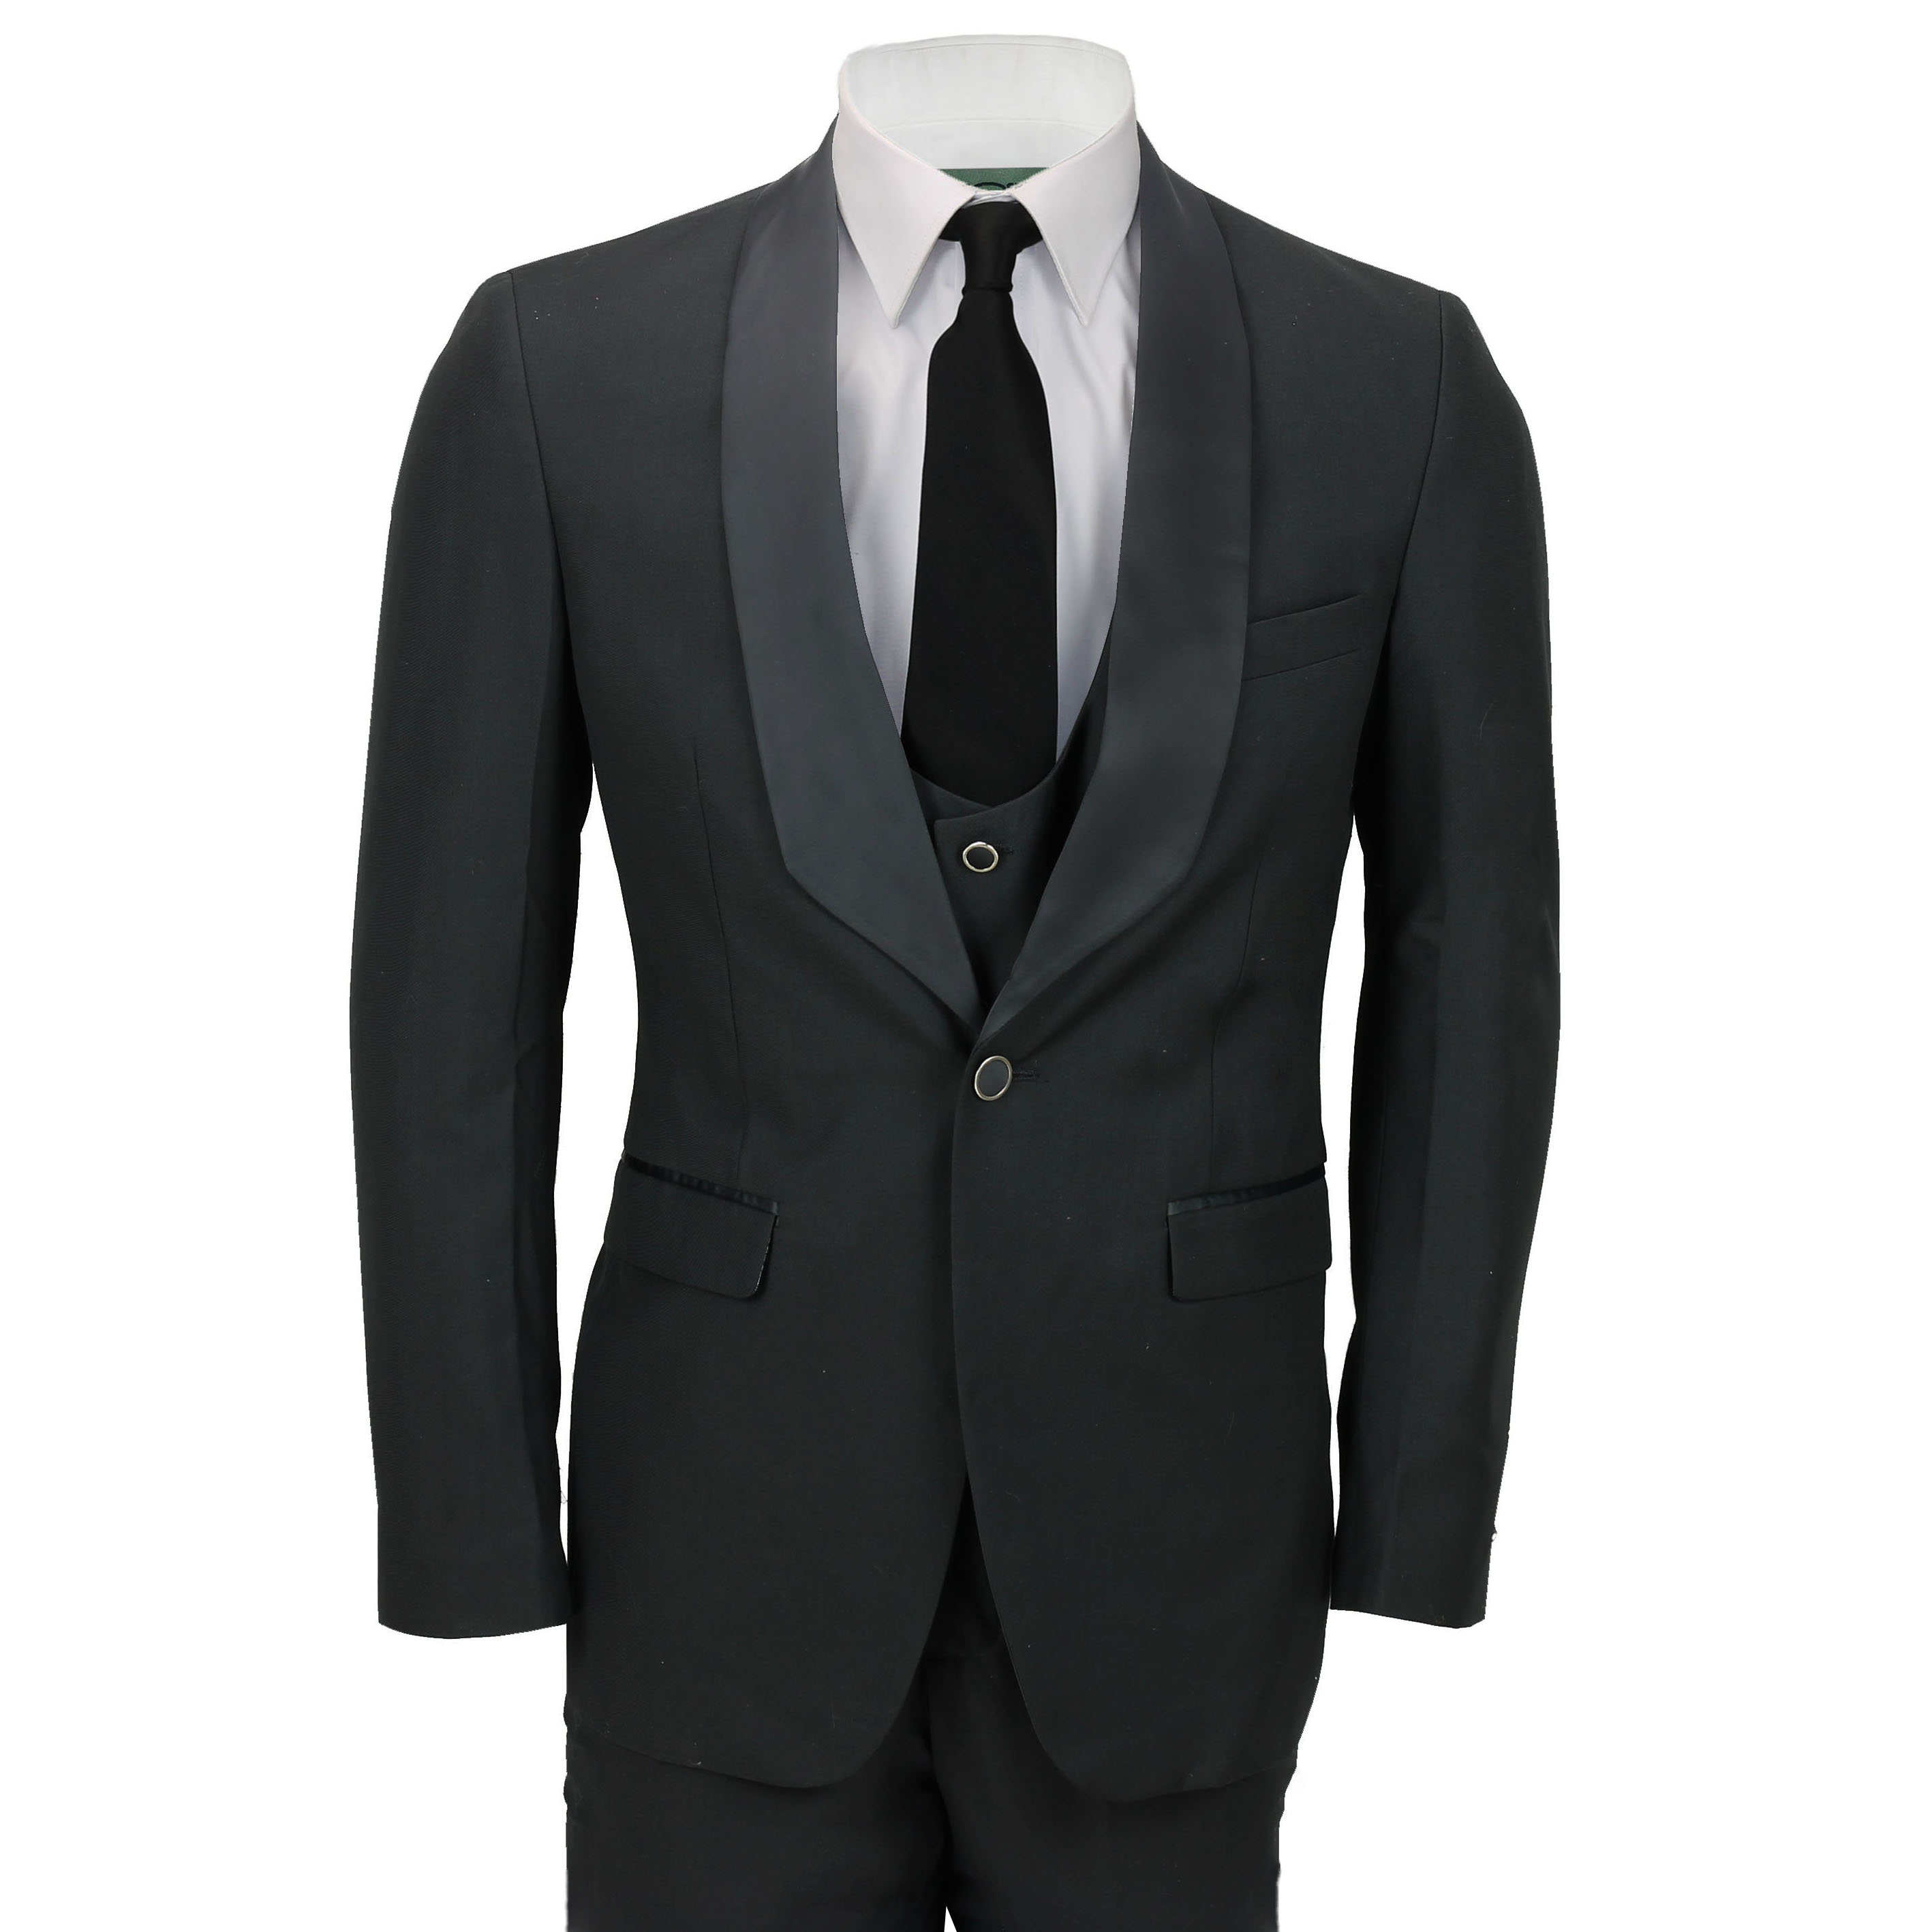 Find great deals on eBay for dinner jacket and trousers. Shop with confidence.